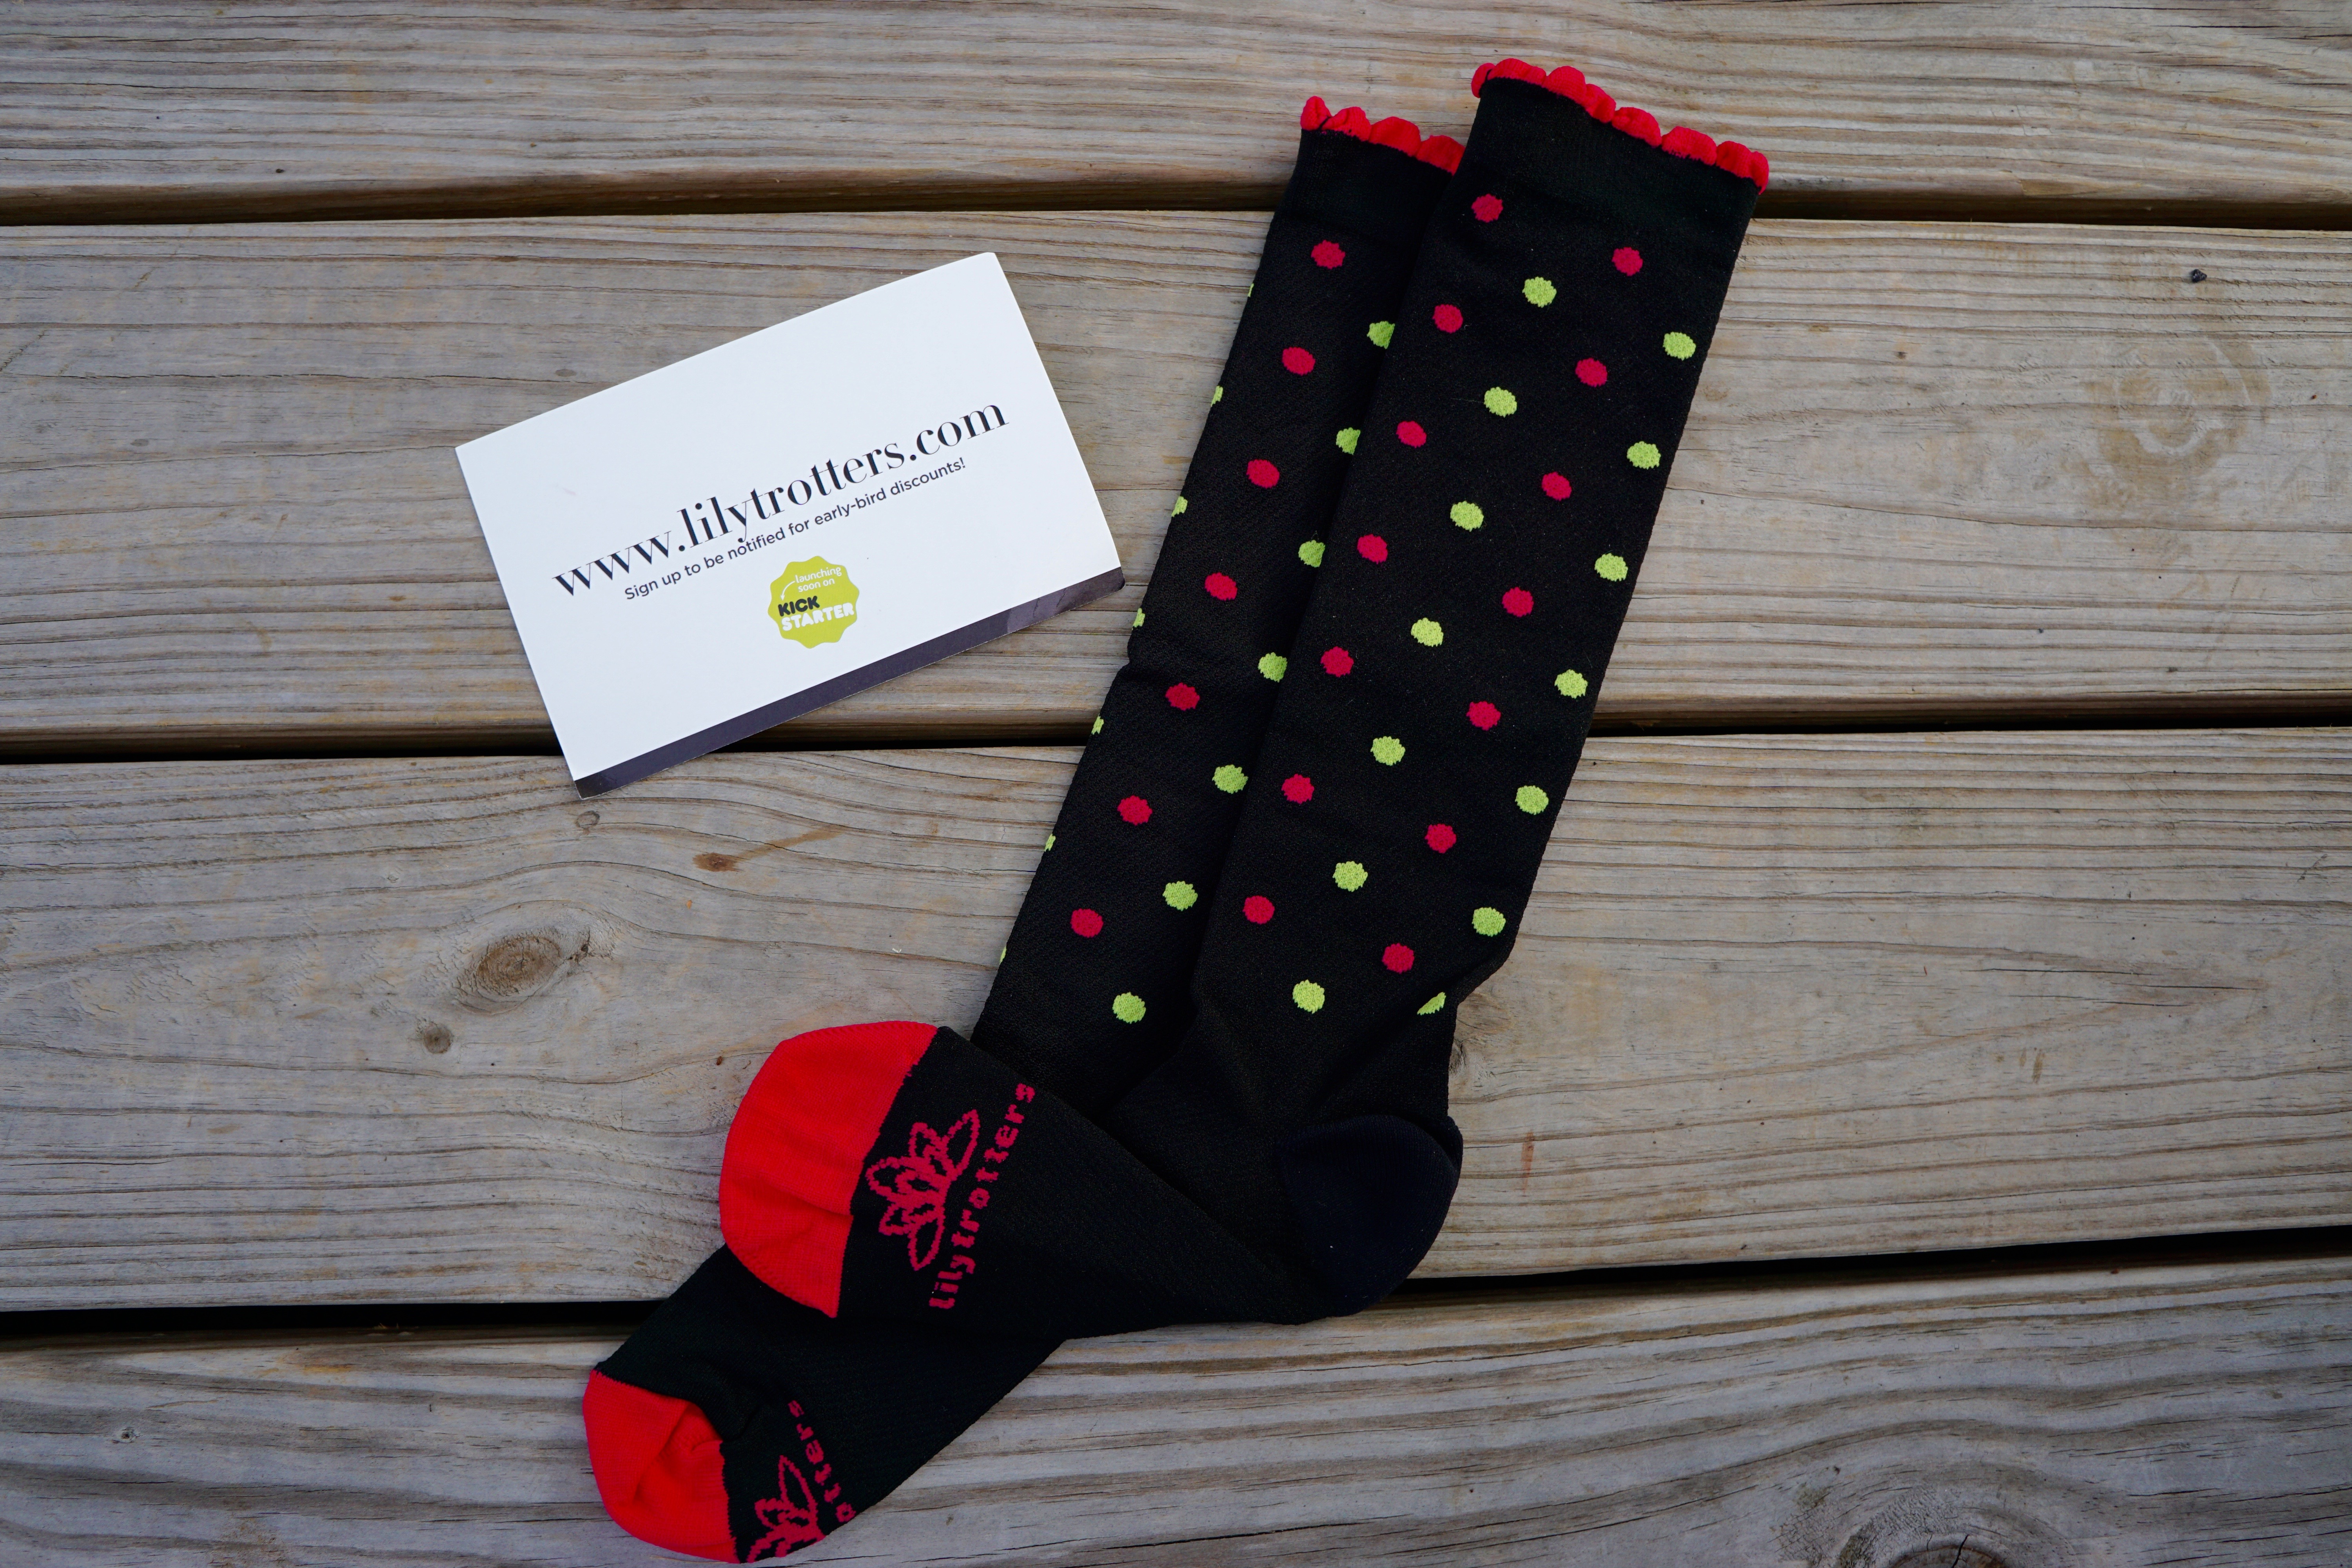 8e10f2856e Lily Trotters Compression Socks Review and Giveaway! Lisa Runs for ...